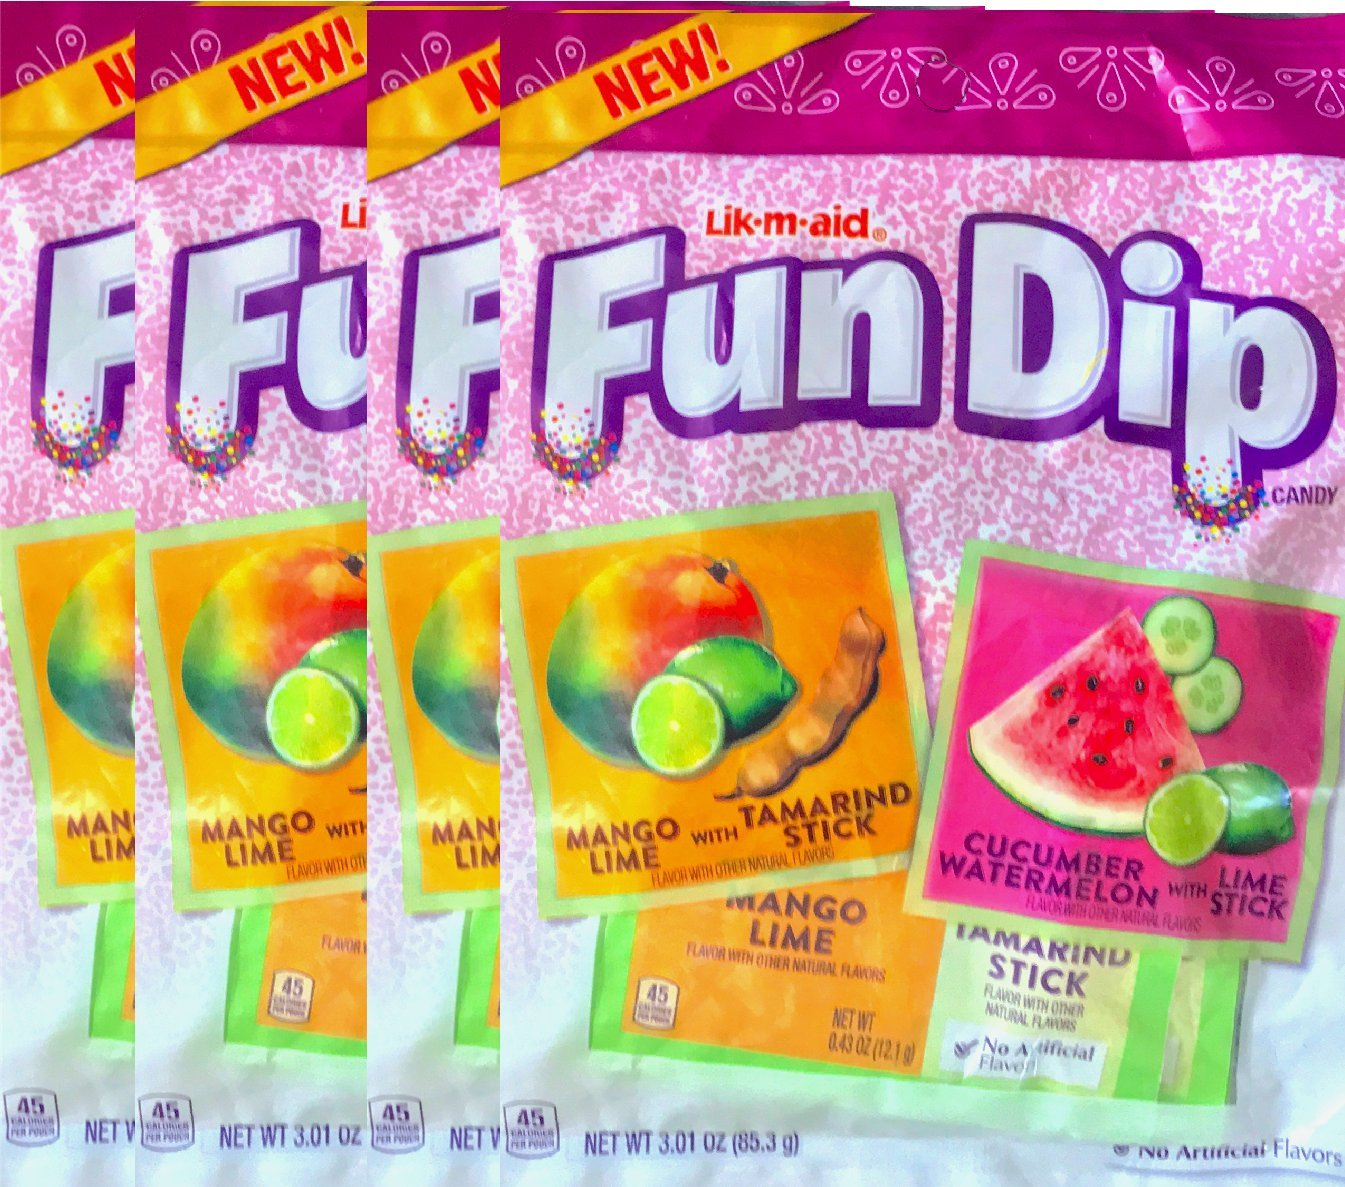 Fun Dip Candy Mango Lime With Tamarindo Stick/Cucumber watermelon With Lime Stick Net Wt 3.01 Oz (4)